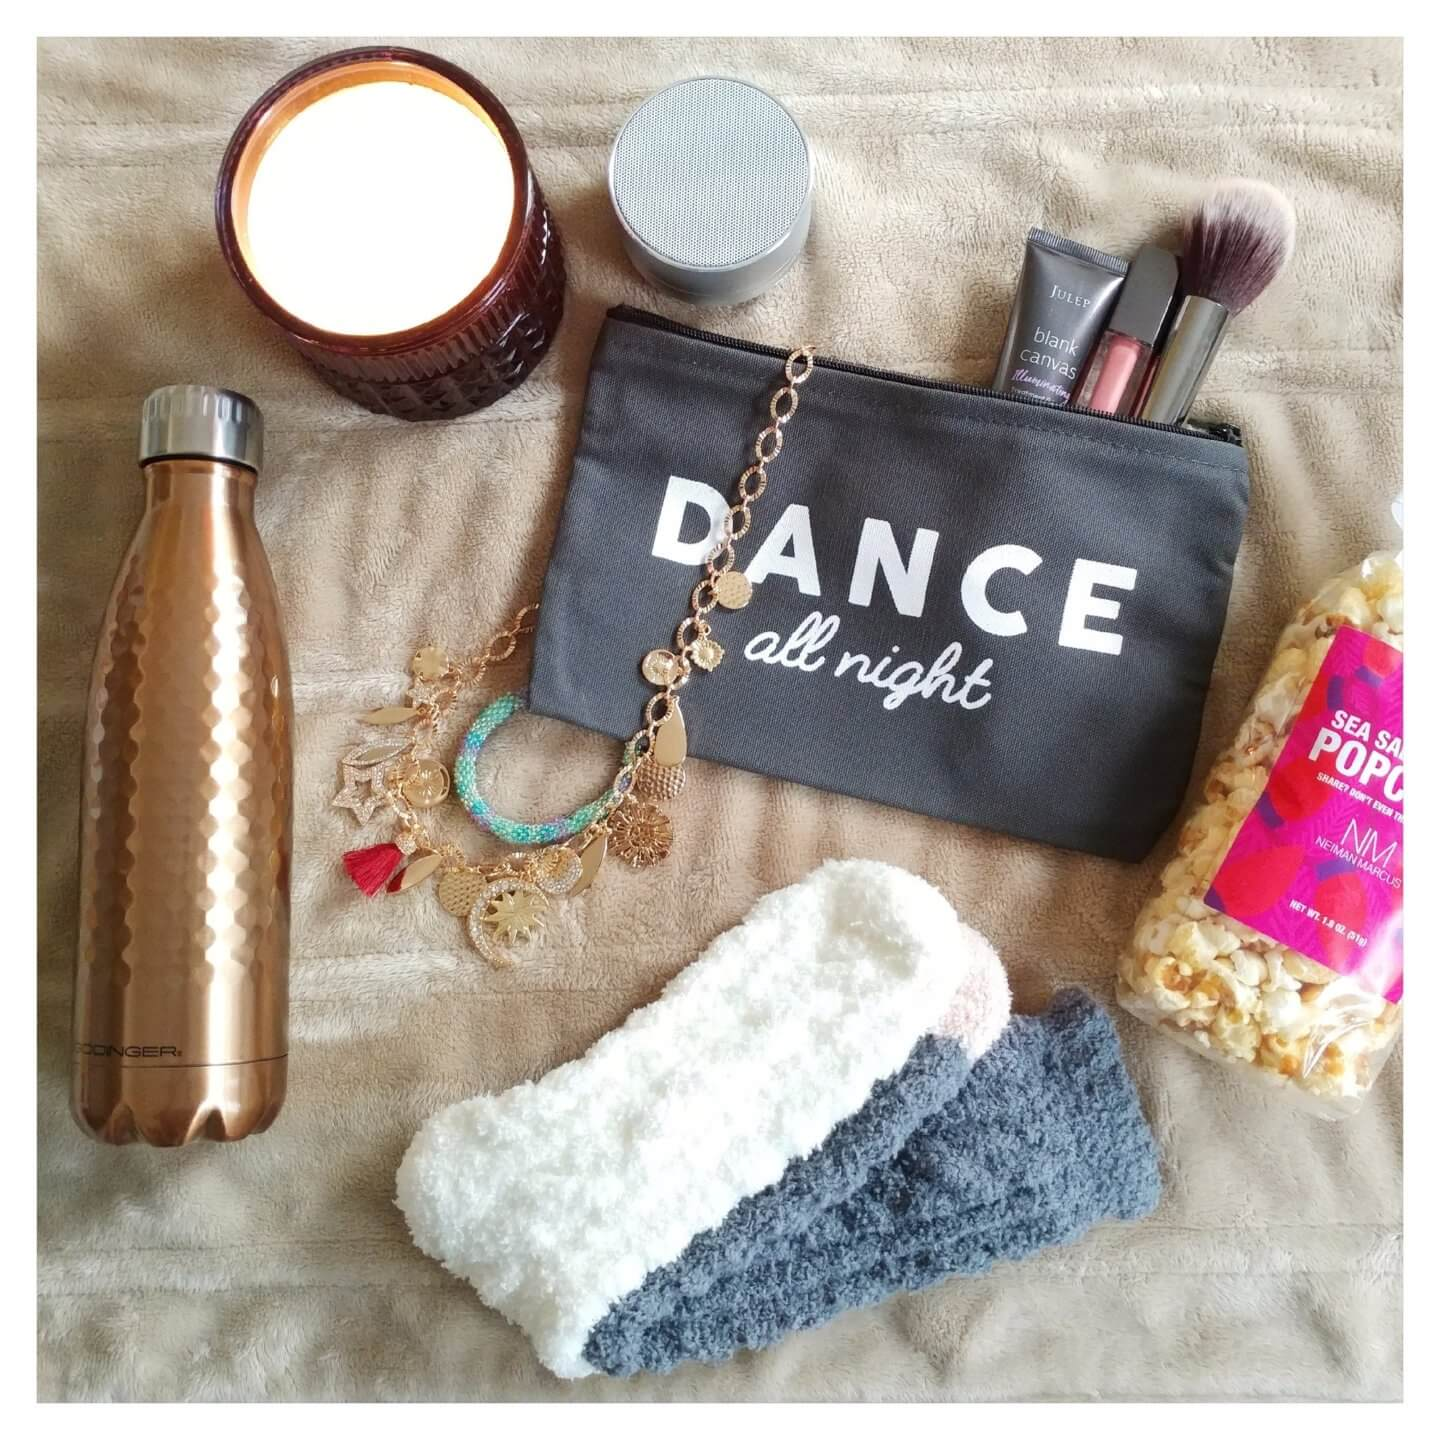 stay-warm-this-winter-cozy-socks-scented-candles-popcorn